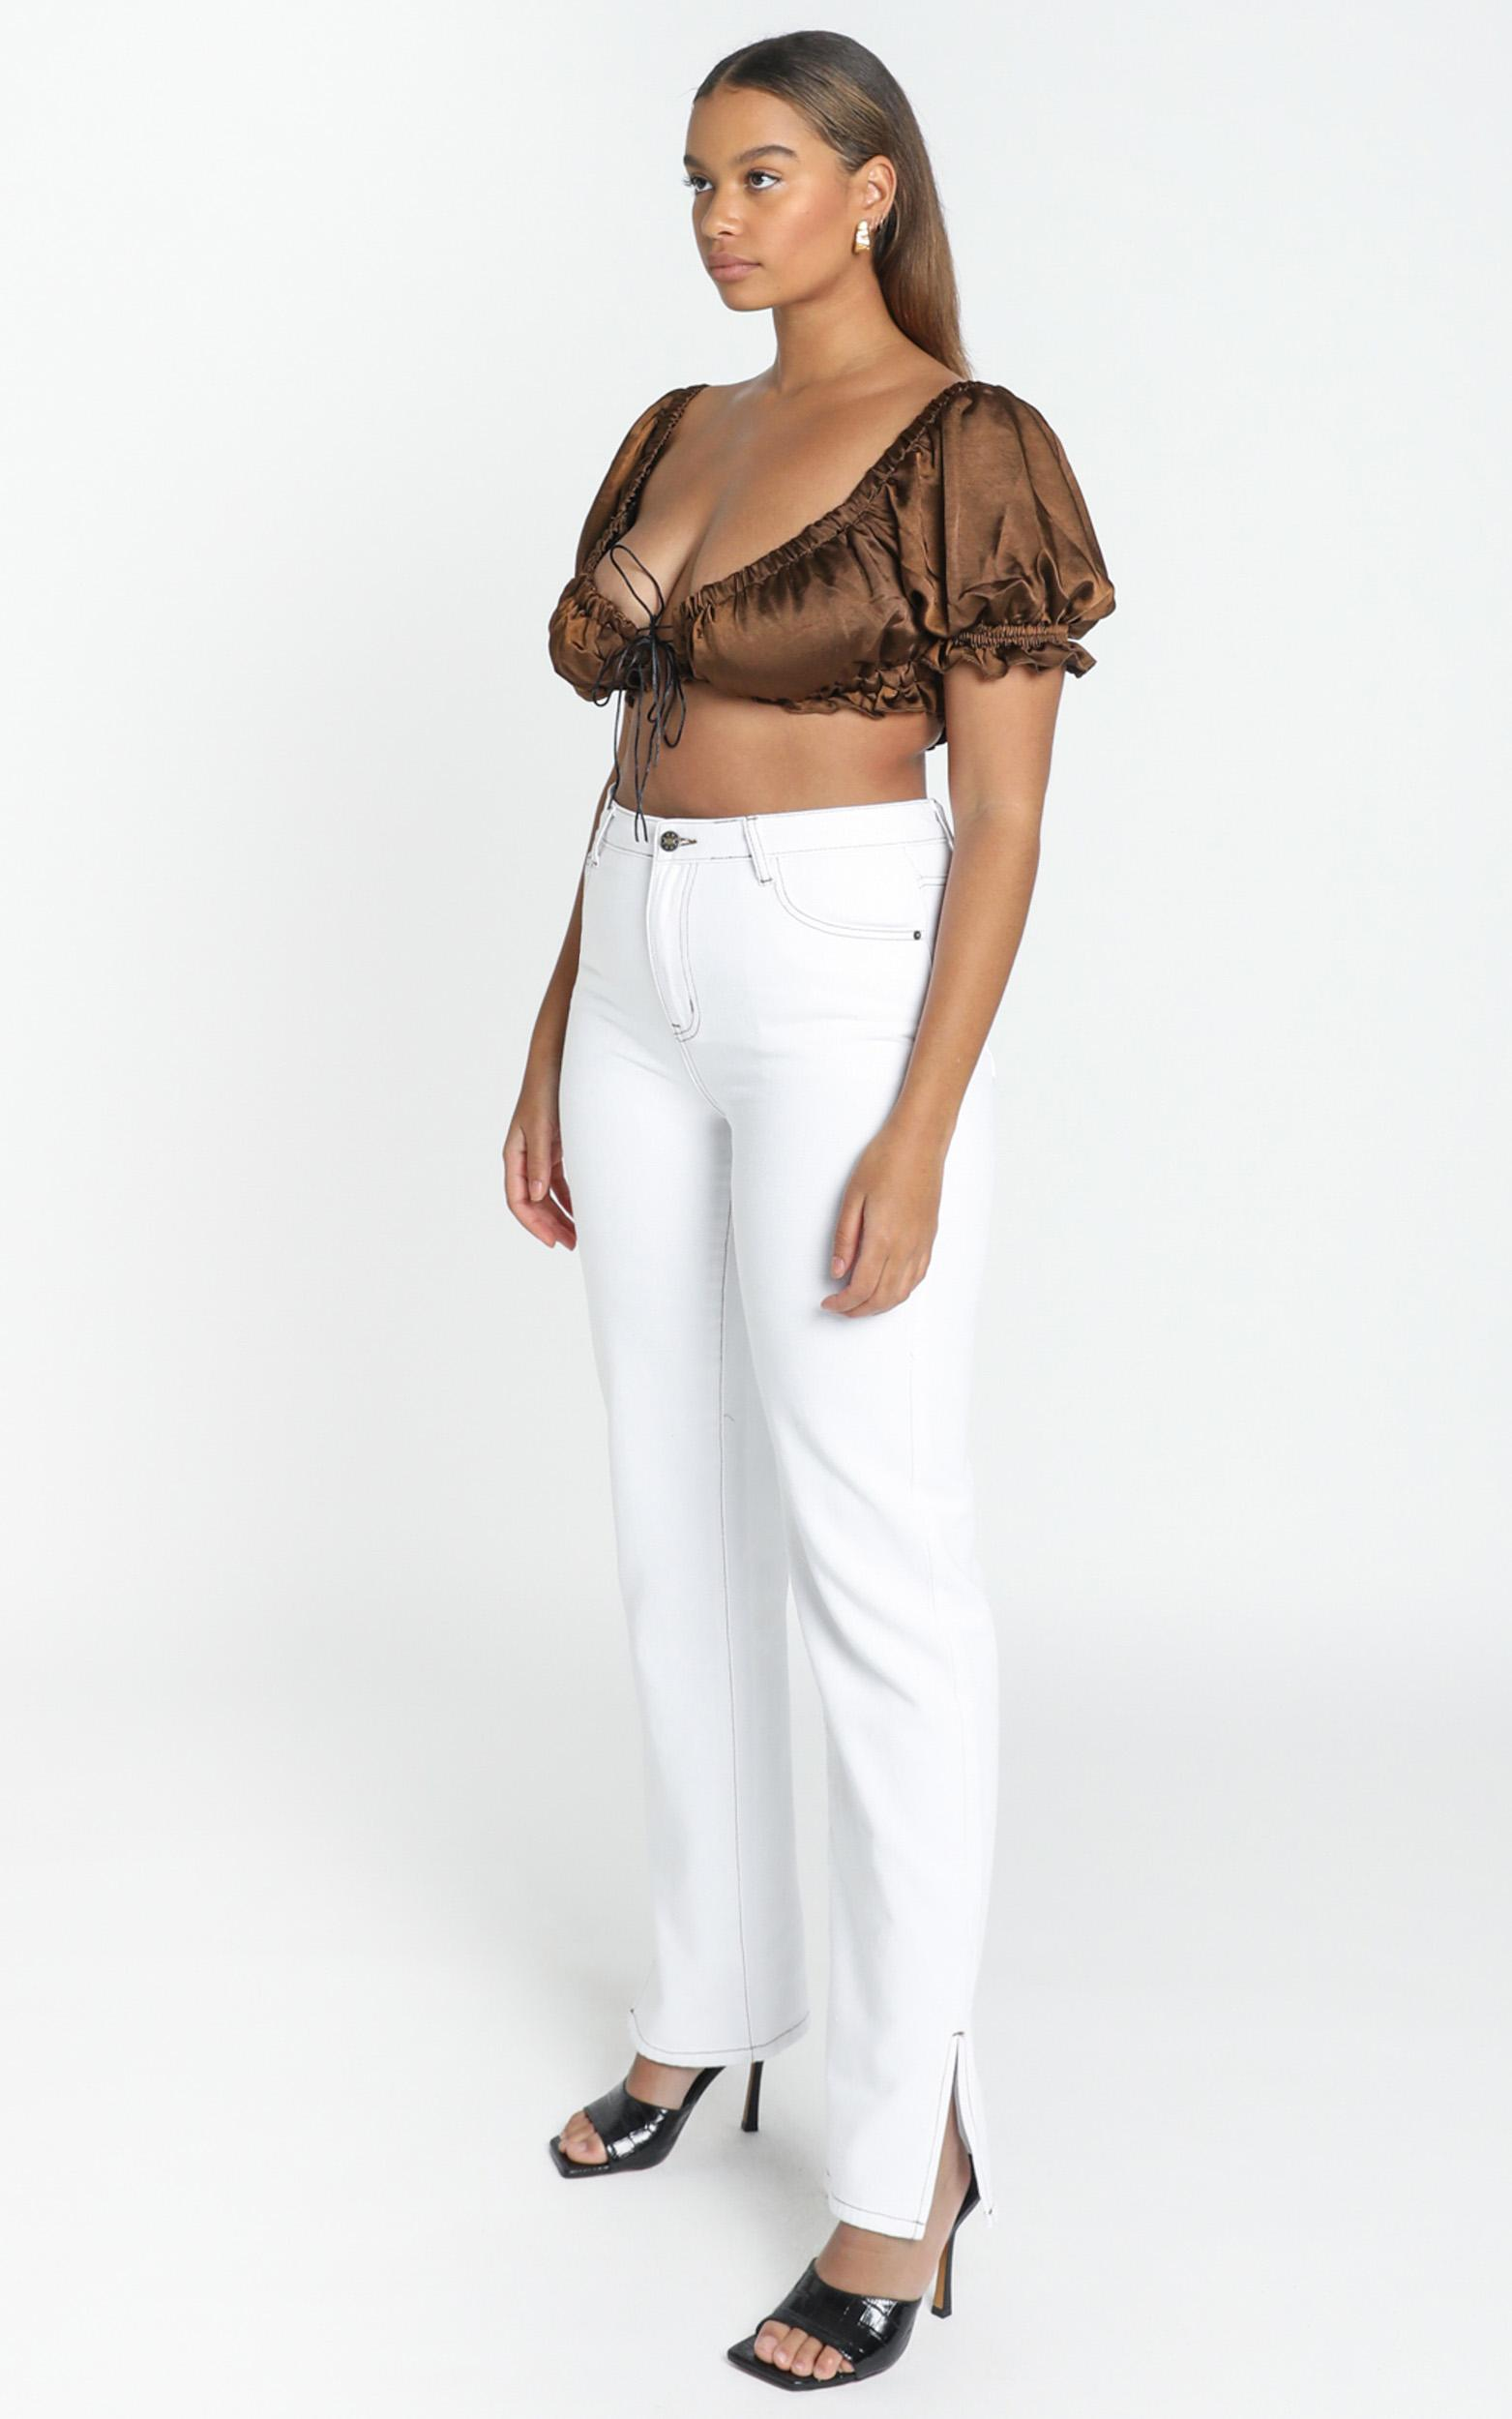 Lioness - A Little More Crop Top in Brown - 6 (XS), Brown, hi-res image number null